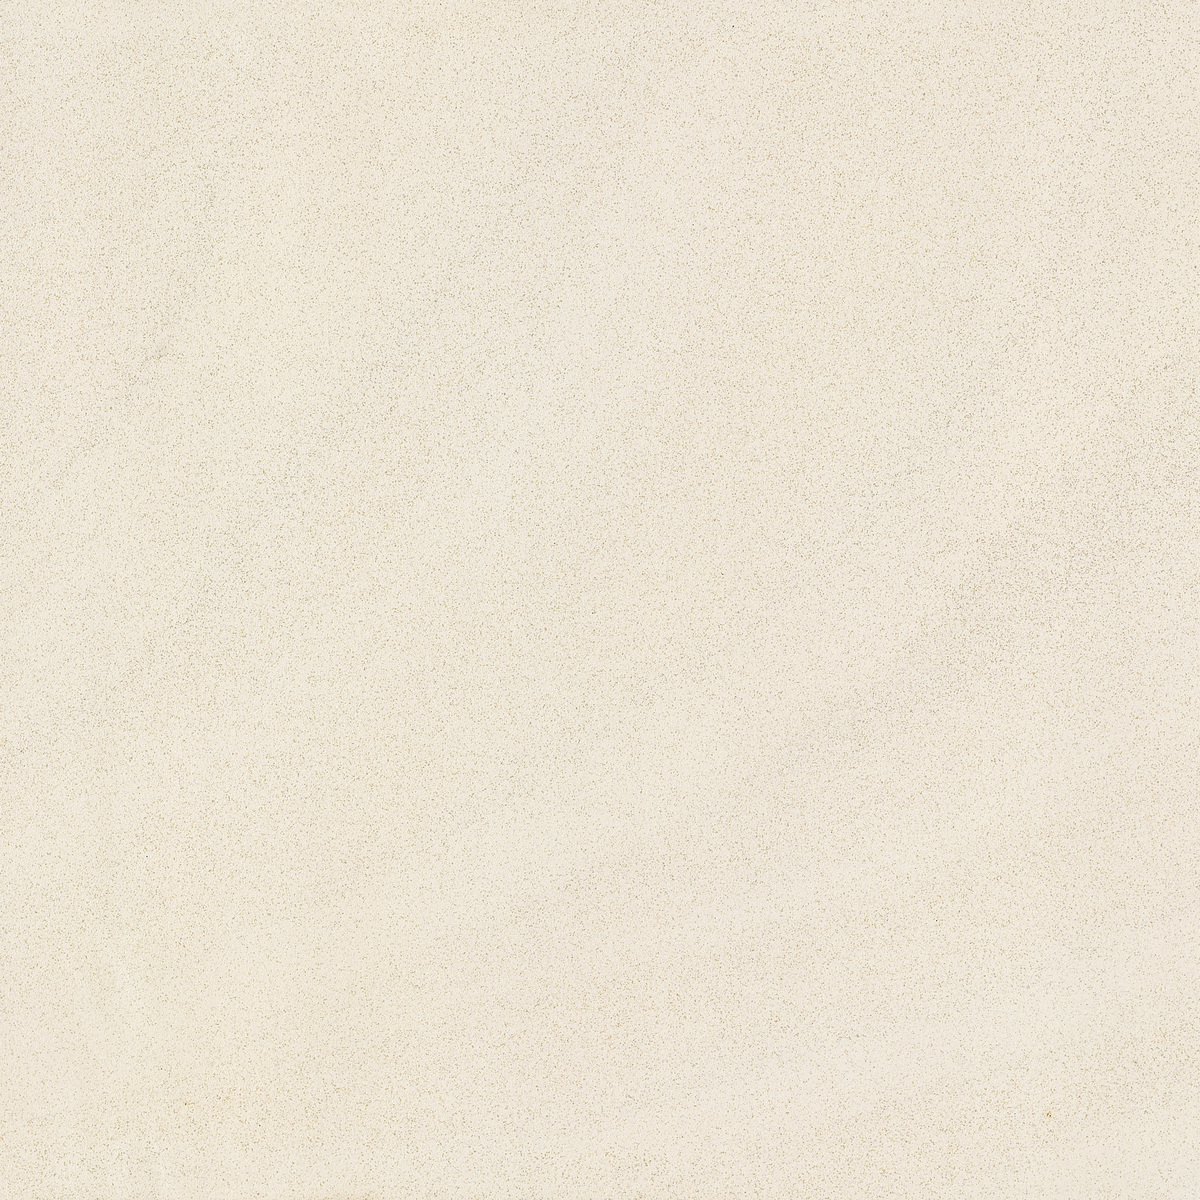 Tiles - PERTH - Matt Beige 300x600mm (8 pieces)